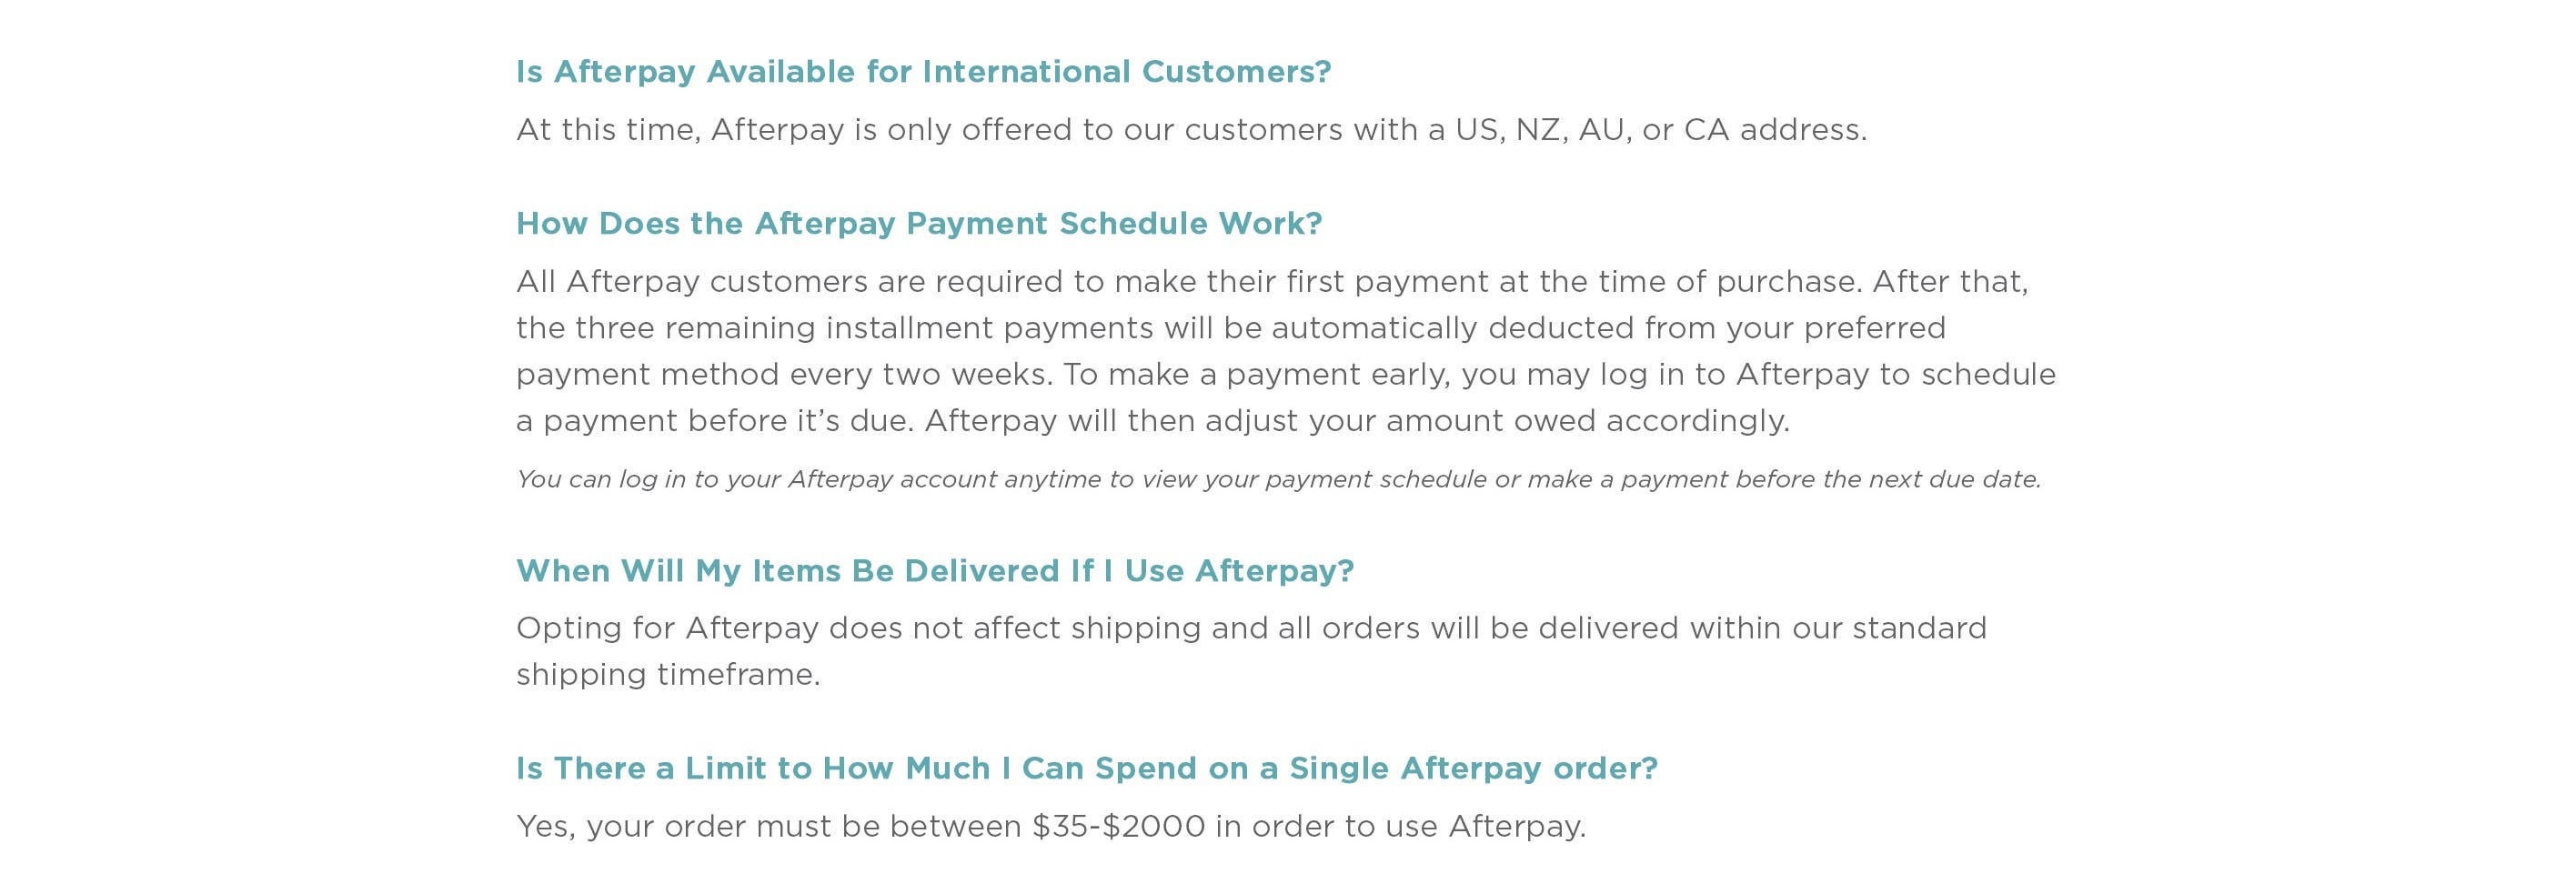 Is Afterpay available for International Customers? At this time, Afterpay is only offered to our customers with a US, NZ, AU, or CA address.  How does the Afterpay Payment schedule work? All Afterpay customers are required to make their first payment at